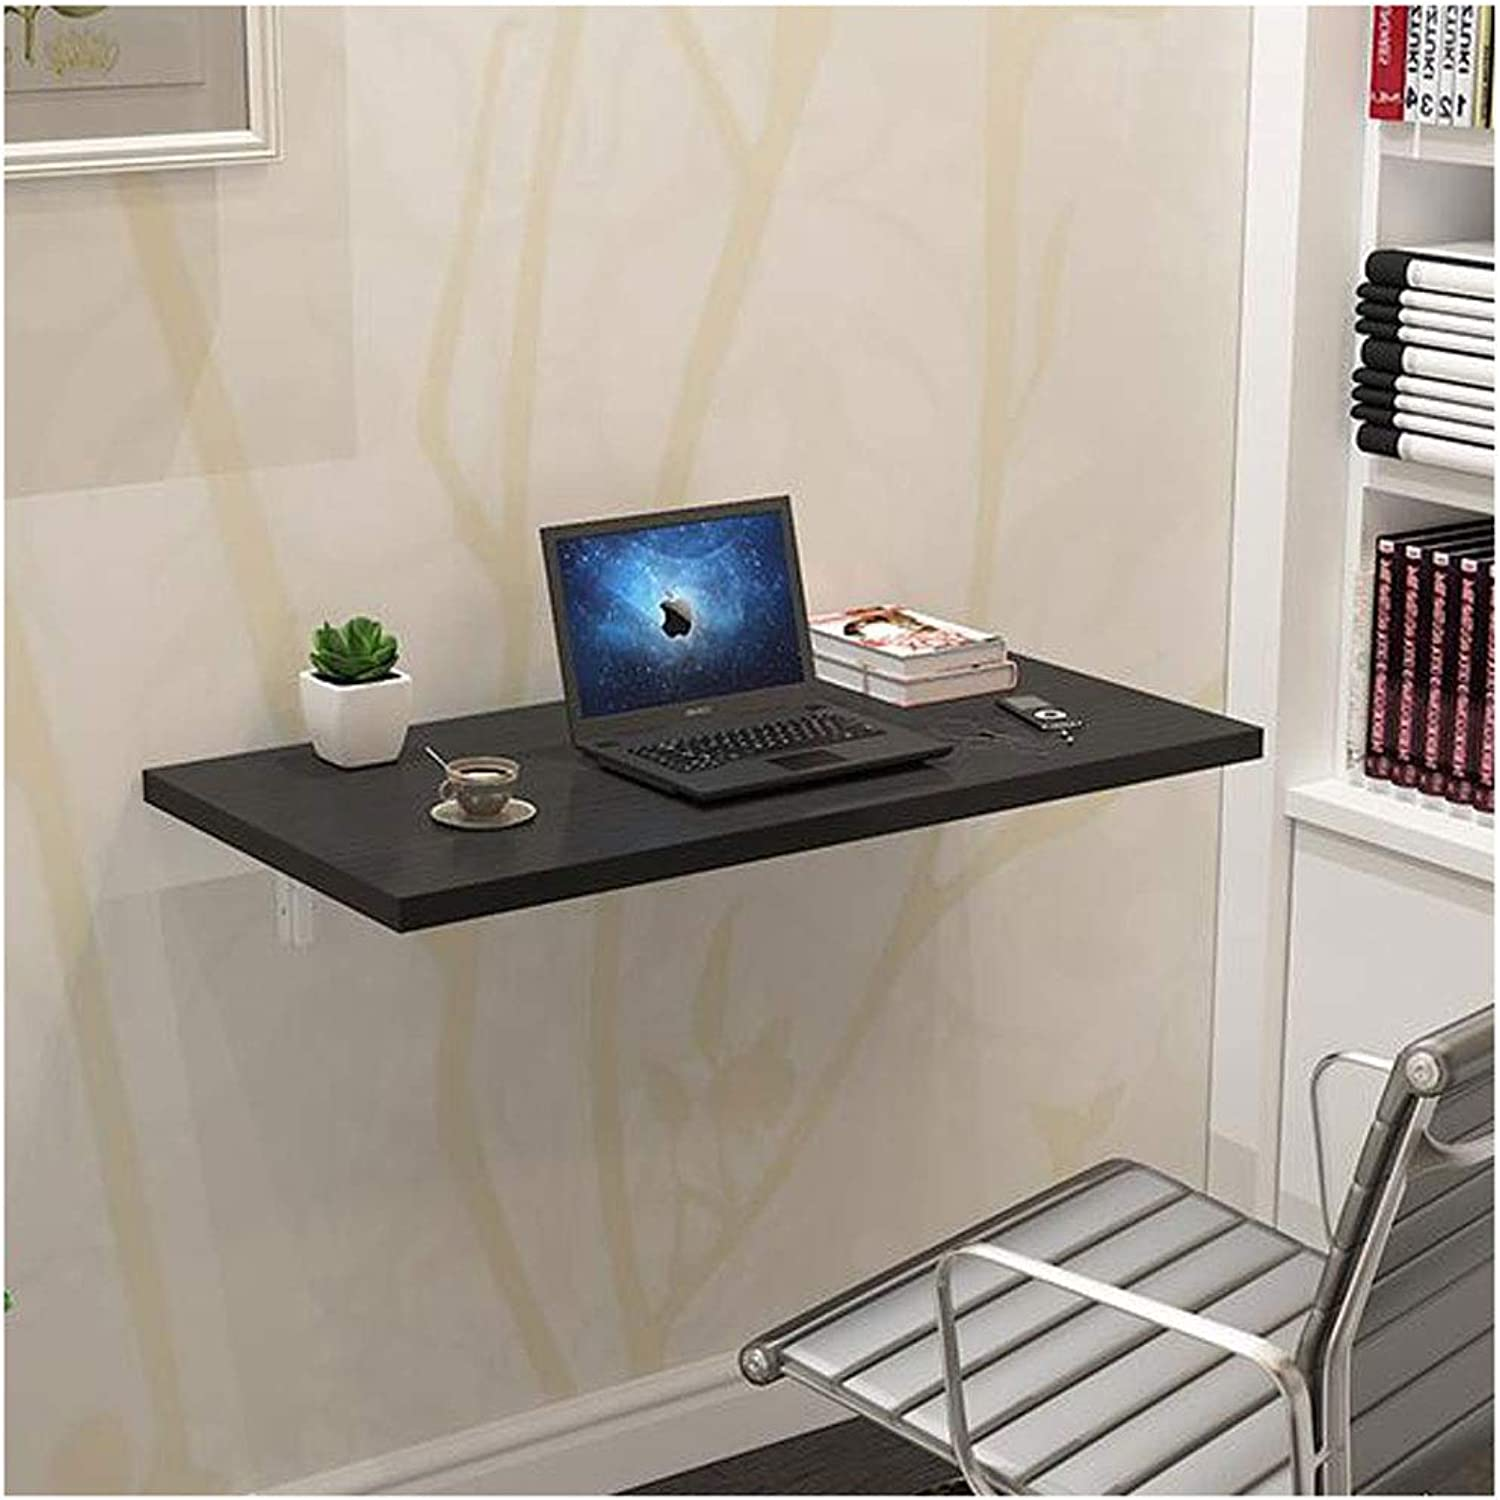 Folding Wall-Mounted Drop Leaf Table Dining Table Space Saver Fold Congreenible Desk Wood Wall Table Modern (color   Black, Size   50  30cm)